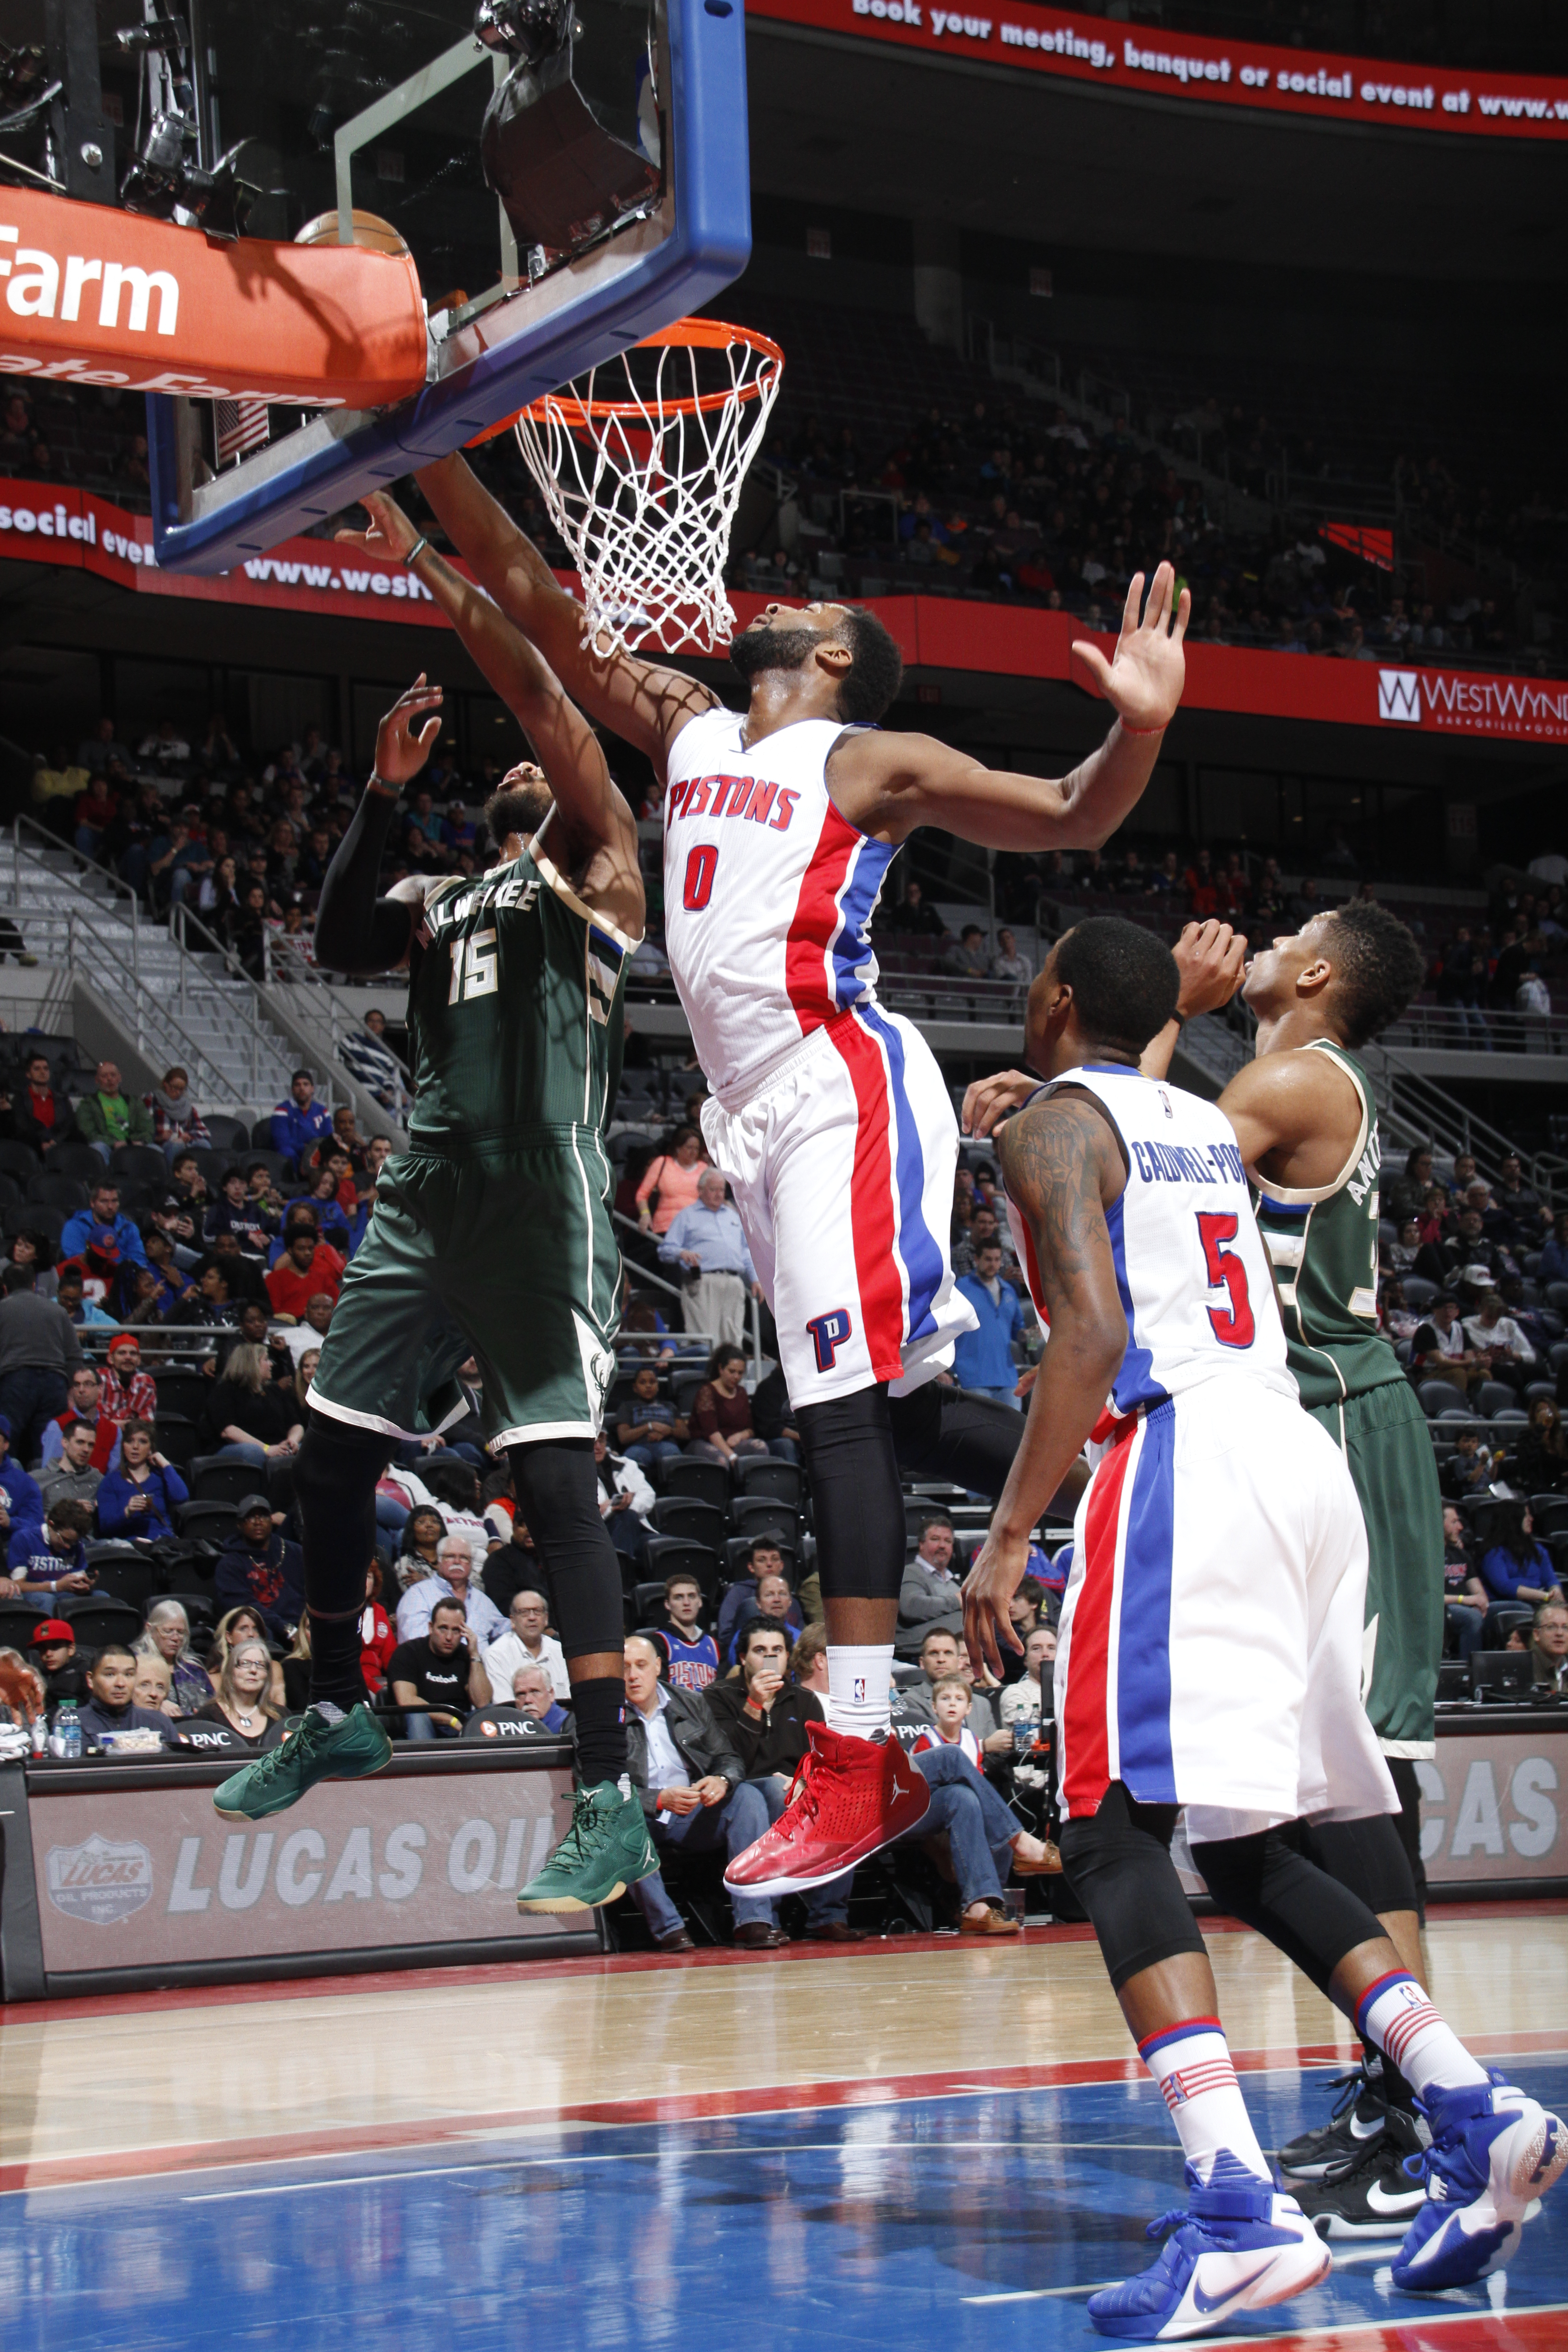 AUBURN HILLS, MI - MARCH 21: Andre Drummond #0 of the Detroit Pistons shoots the ball against the Milwaukee Bucks on March 21, 2016 at The Palace of Auburn Hills in Auburn Hills, Michigan. (Photo by B. Sevald/Einstein/NBAE via Getty Images)